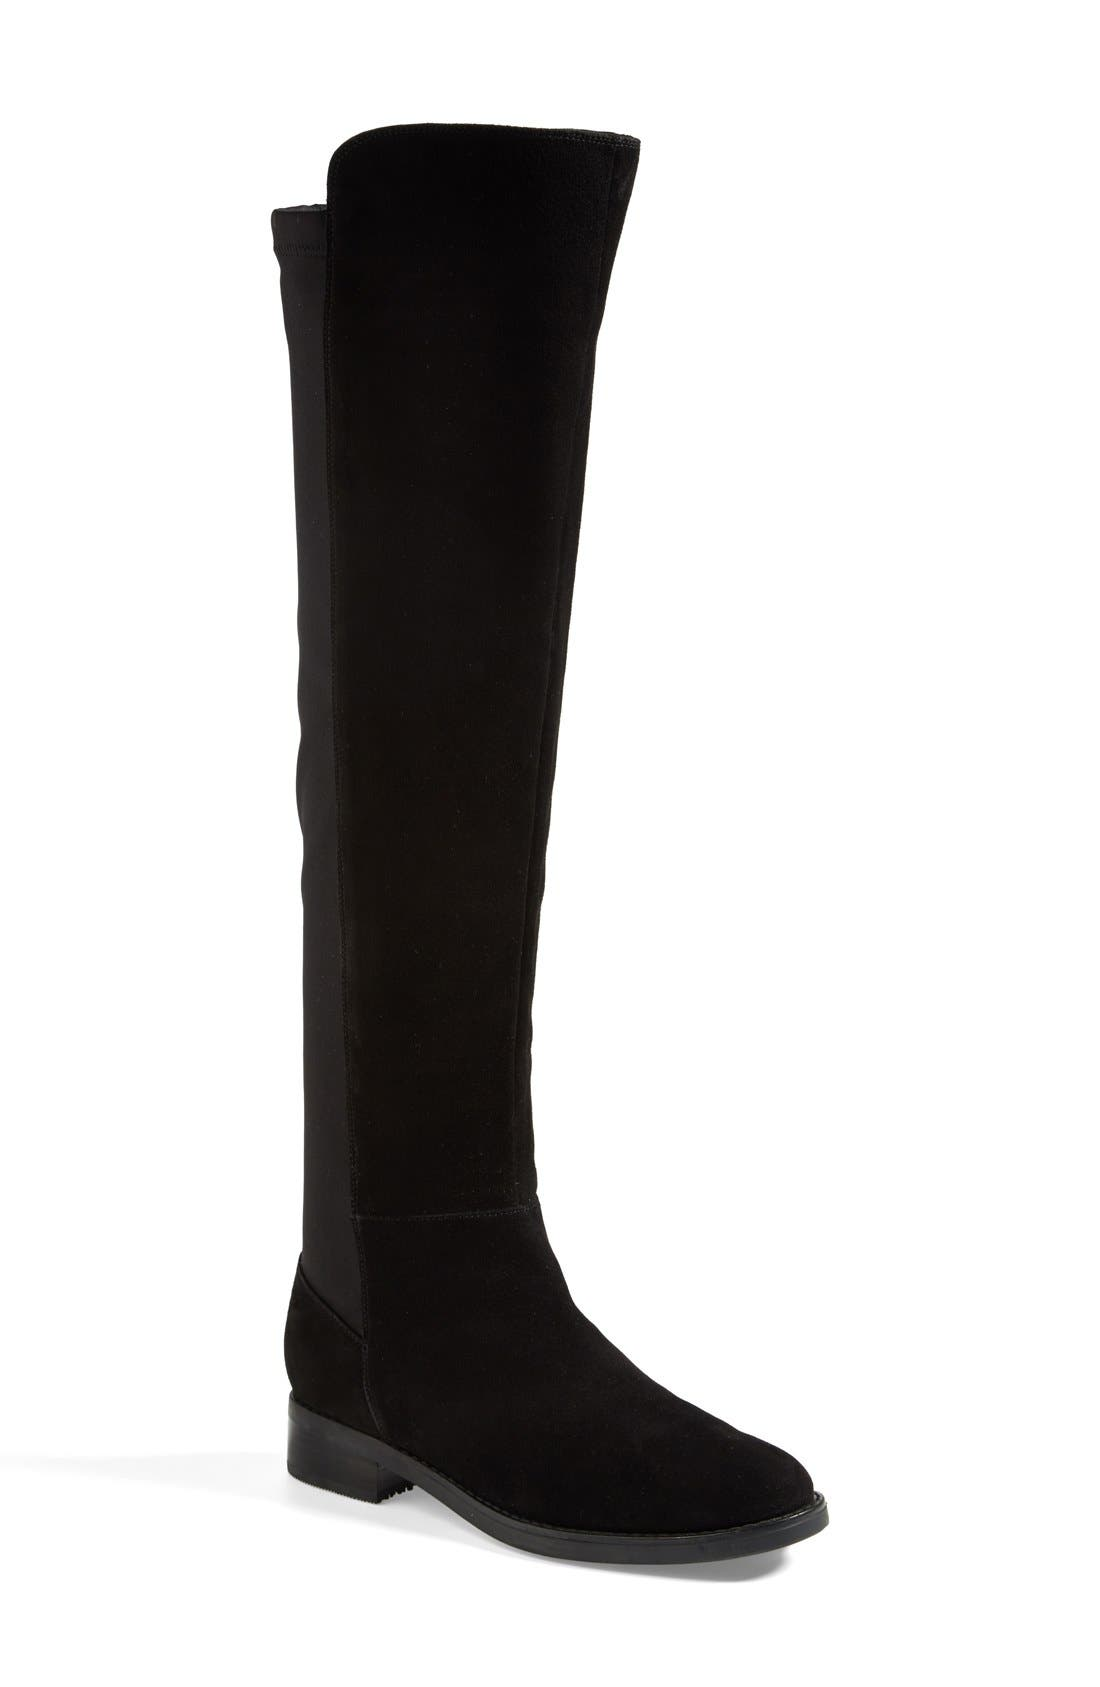 Blondo 'Eden' Over the Knee Waterproof Boot (Women) | Nordstrom